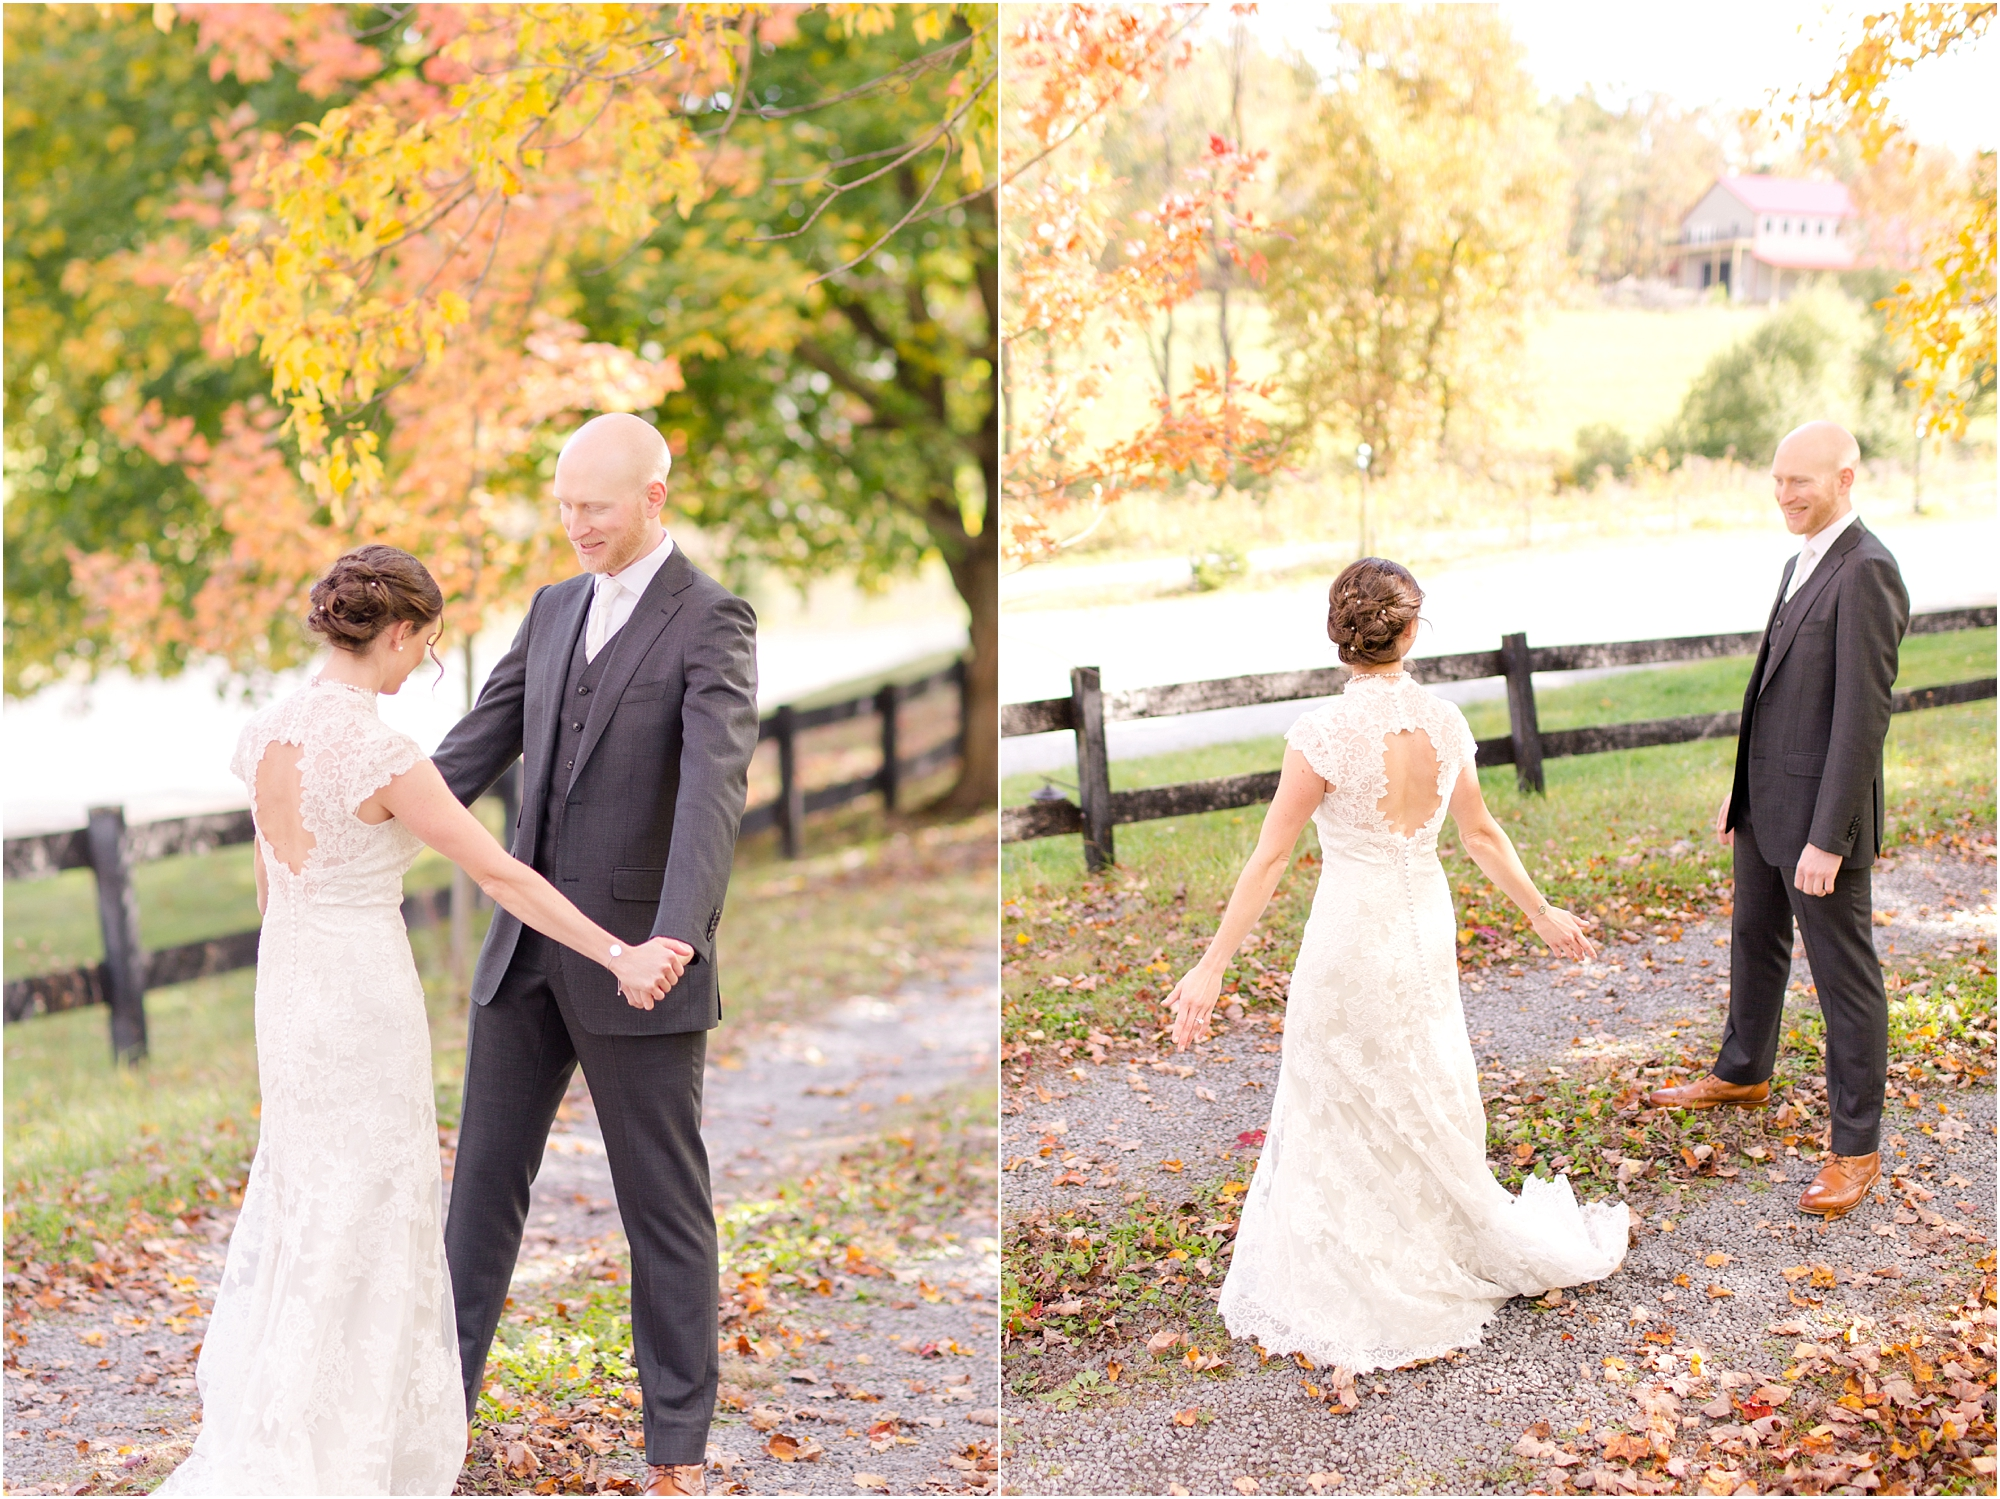 Bird 2. First Look-217_anna grace photography baltimore maryland wedding photographer chanteclaire wedding photo.jpg